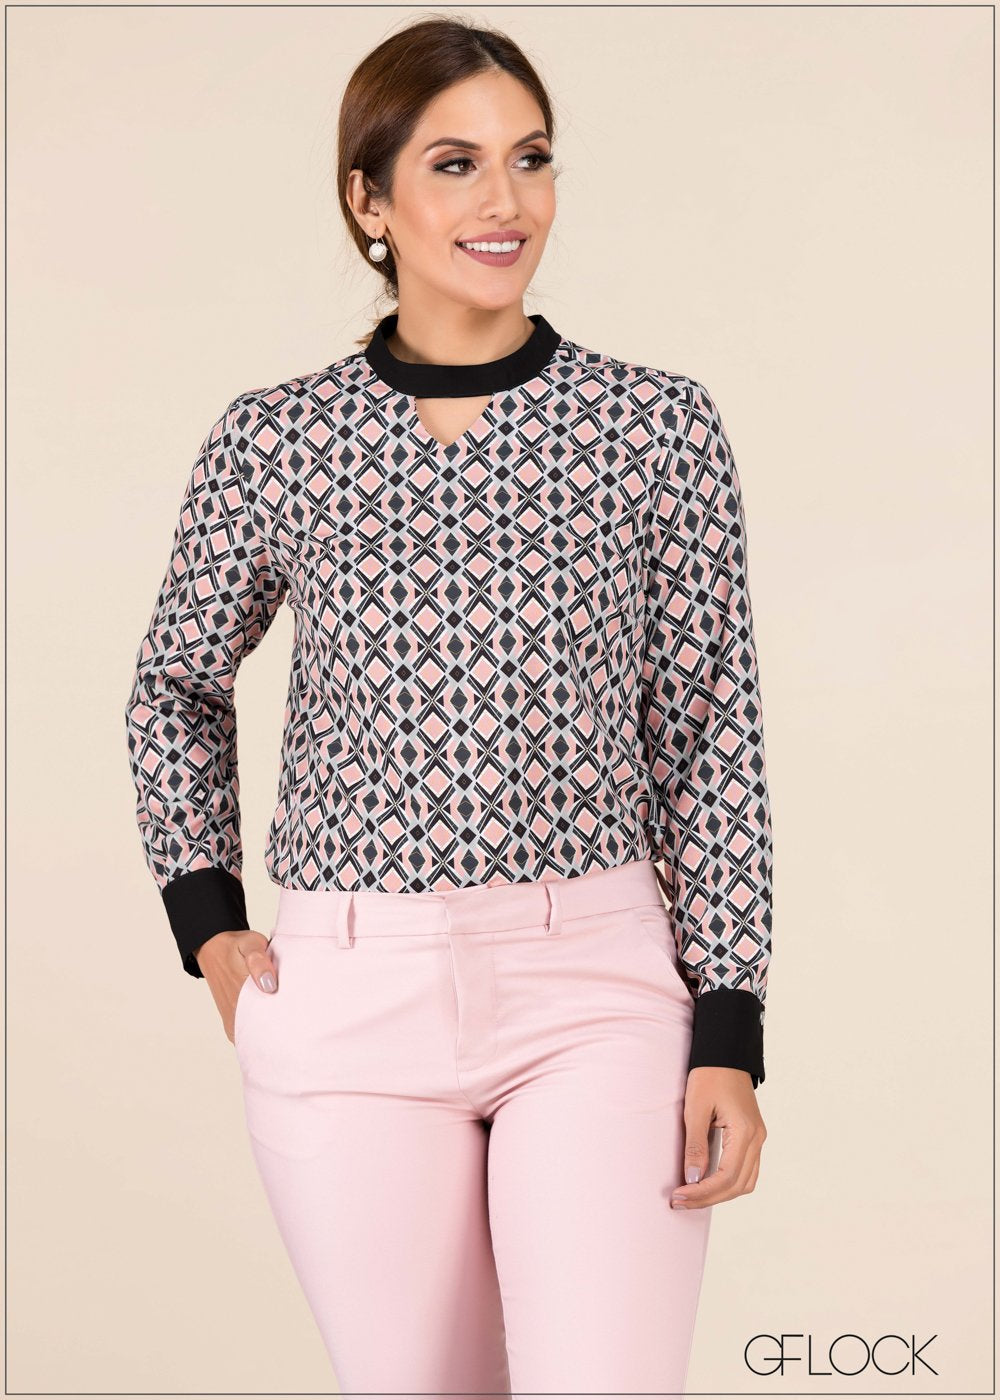 GFLOCK - [product_sku] - Women_Top - Contrast Collar And Cuff Shirt